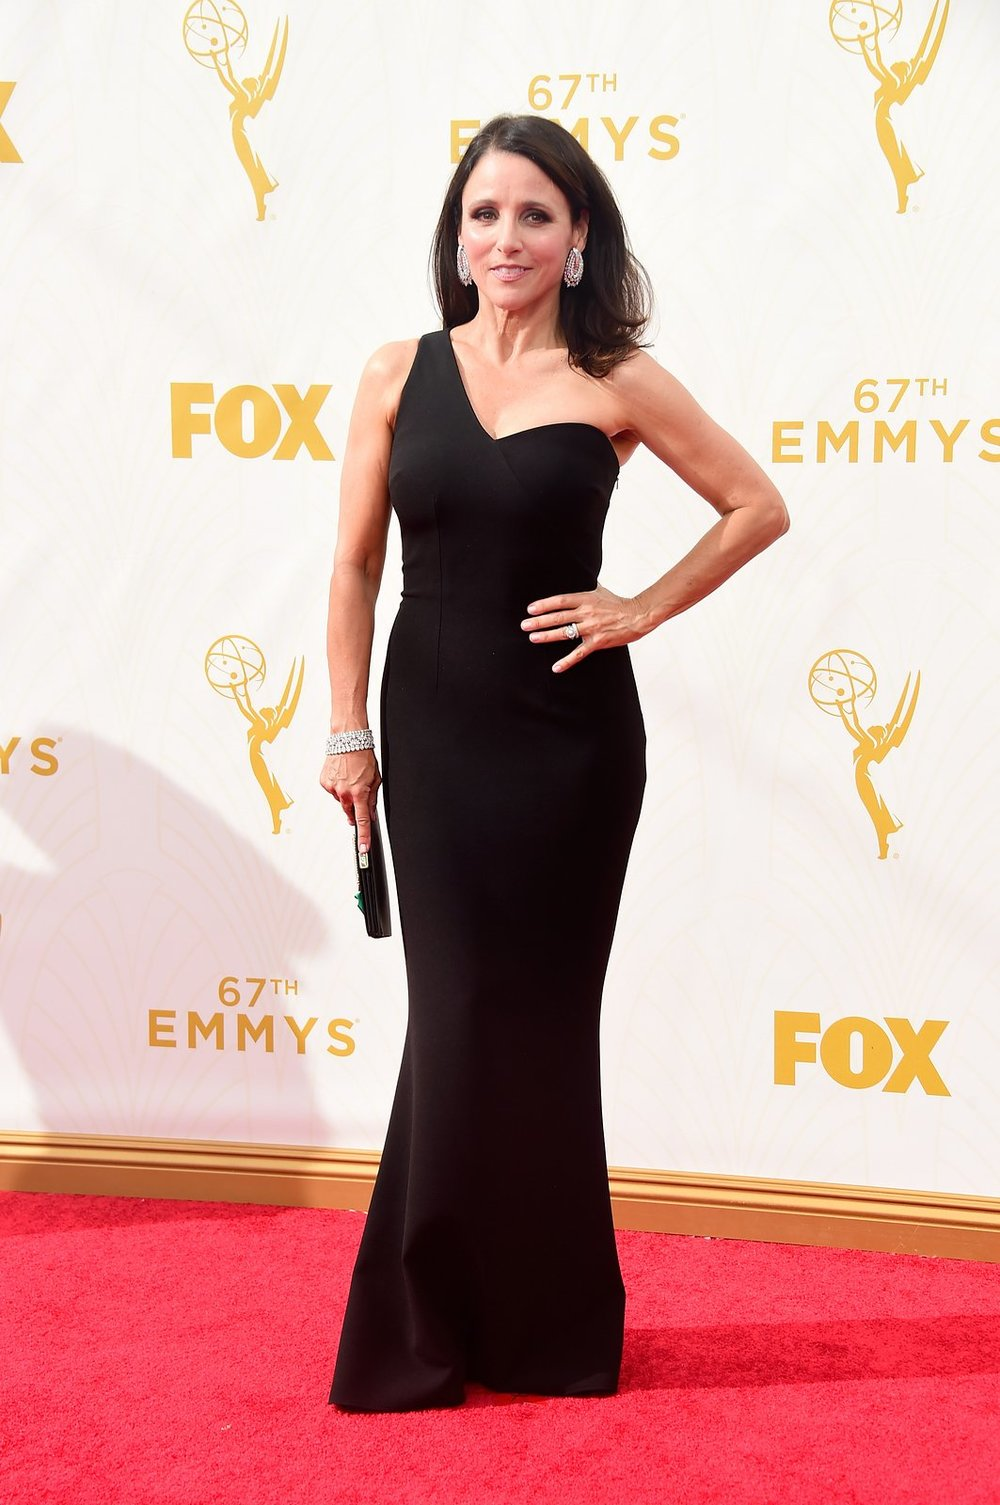 julia-louis-dreyfus-emmys-red-carpet-2015.jpg